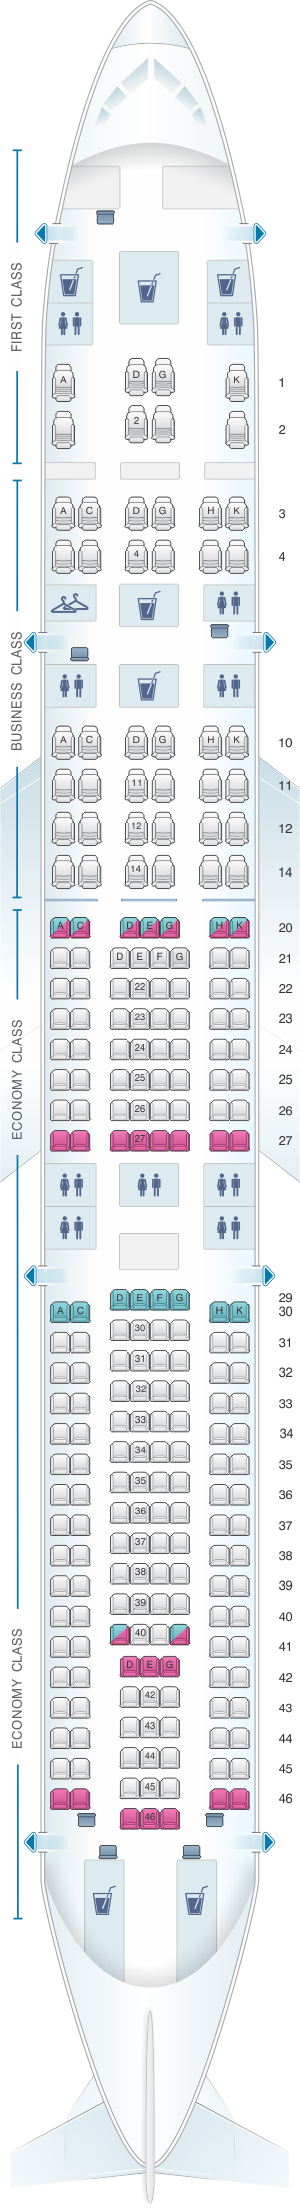 Seat map for Lufthansa Airbus A340 300 241pax version 1-2